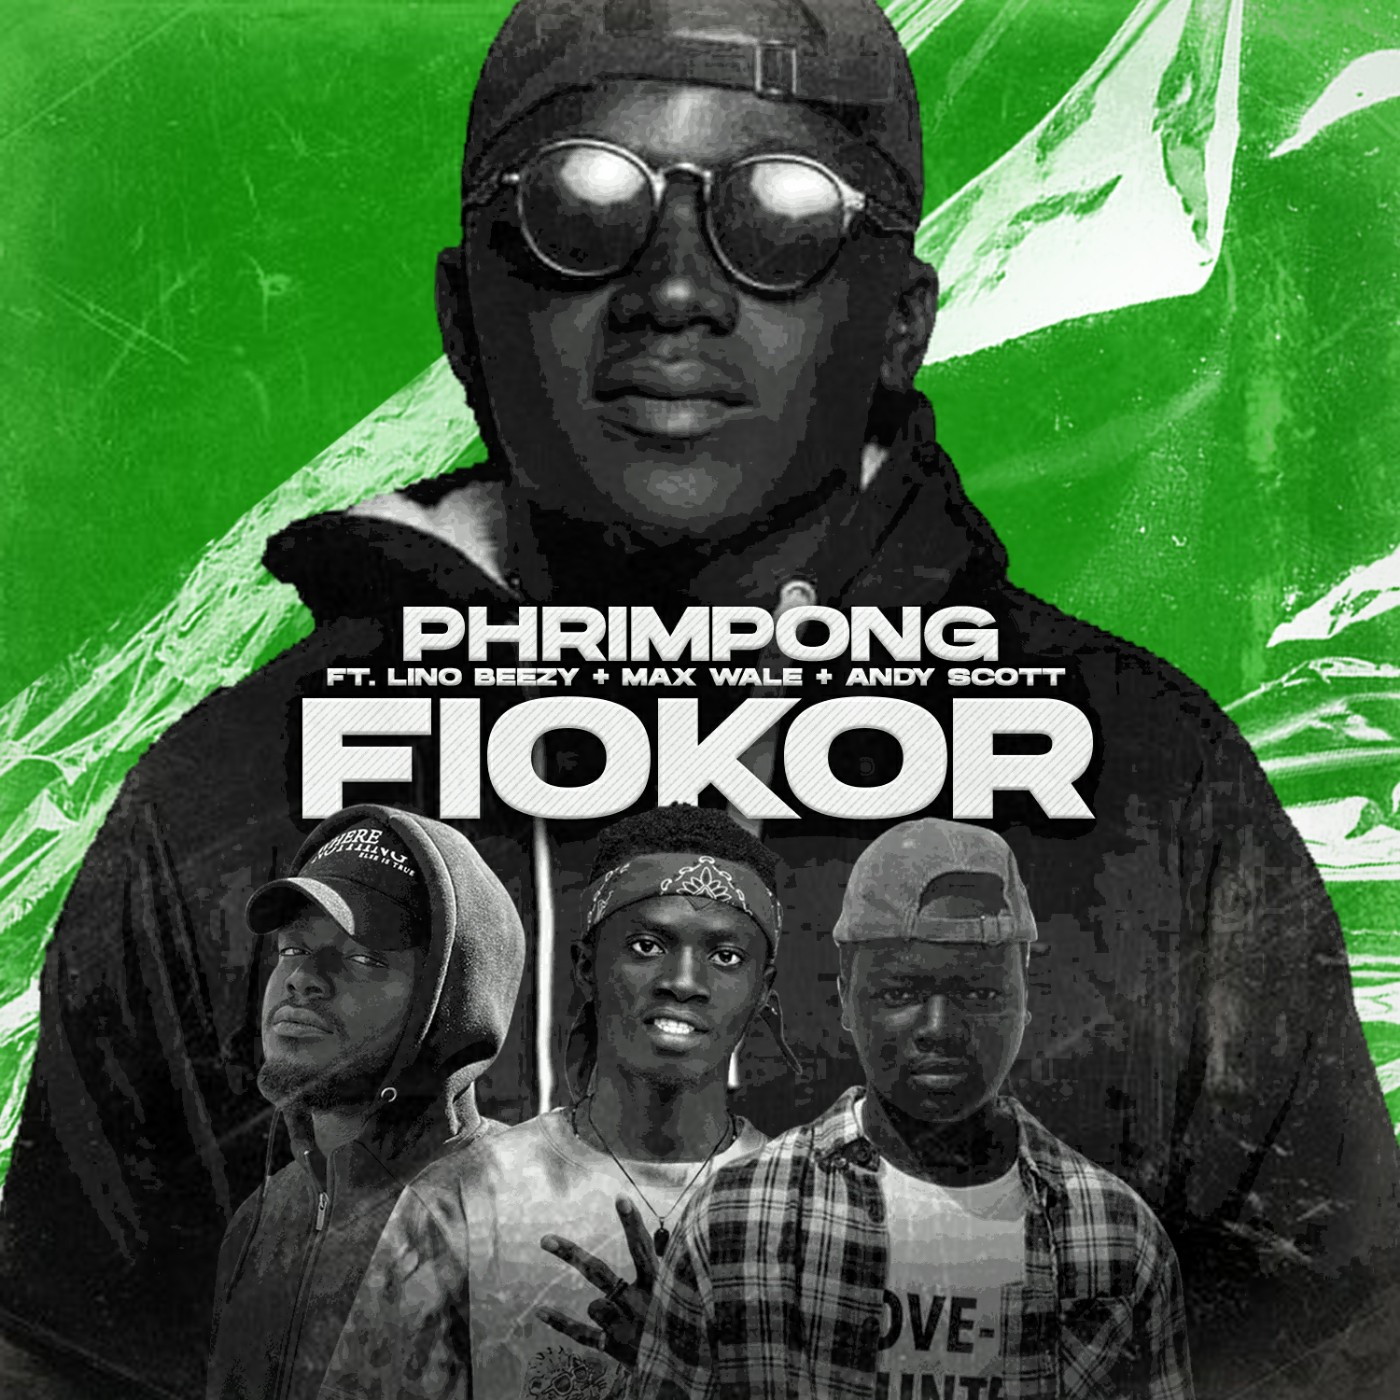 """New Music: Phrimpong – """"Fiokor"""" feat. Max Wale, Andy Scott & Lino Beezy"""